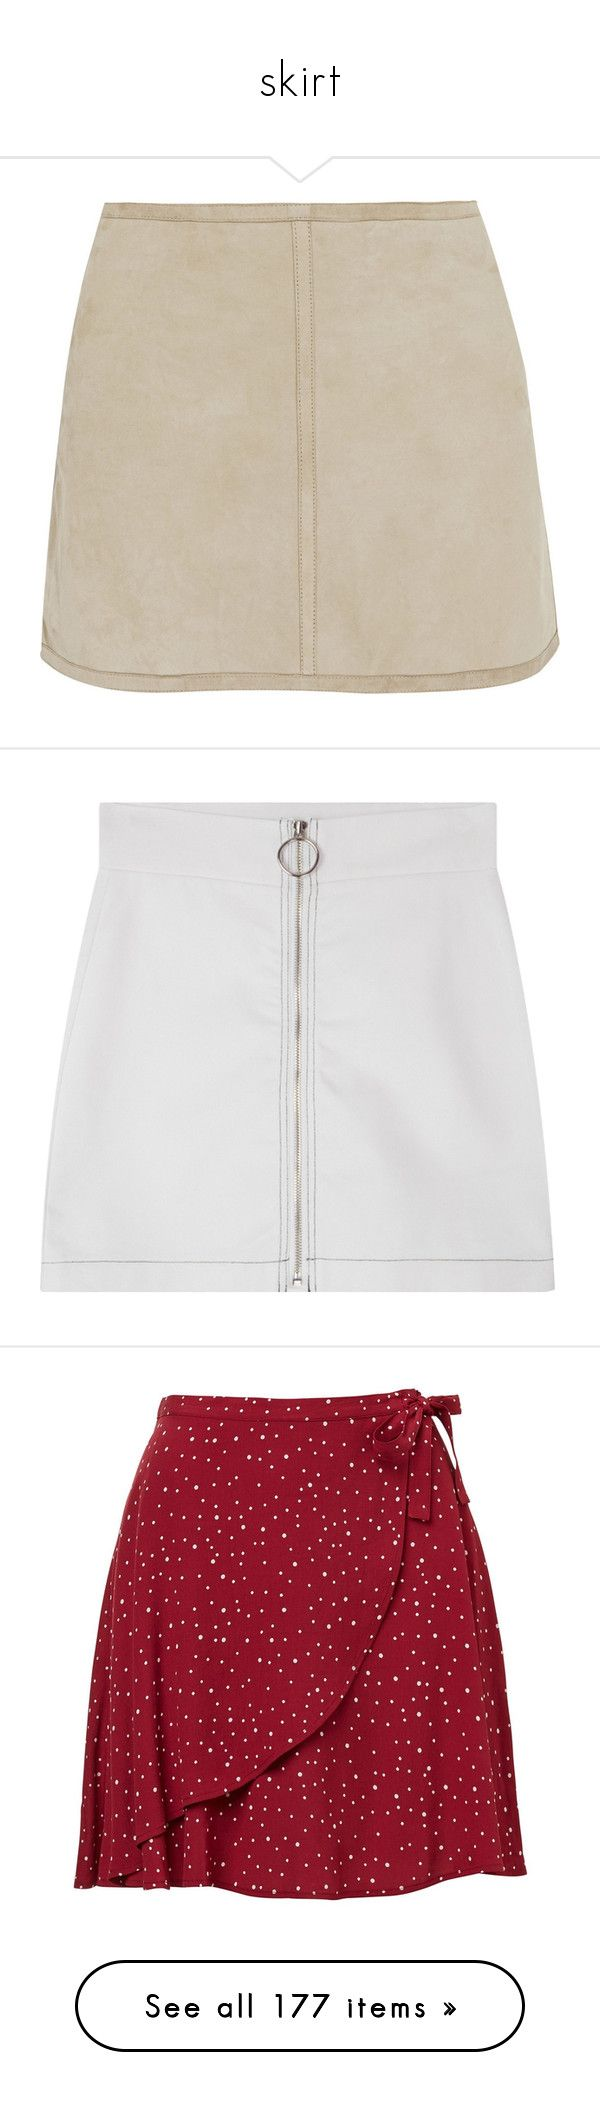 """skirt"" by petitaprenent ❤ liked on Polyvore featuring skirts, mini skirts, bottoms, saias, faldas, mini, neutrals, short mini skirts, suede leather skirt and zipper skirt"